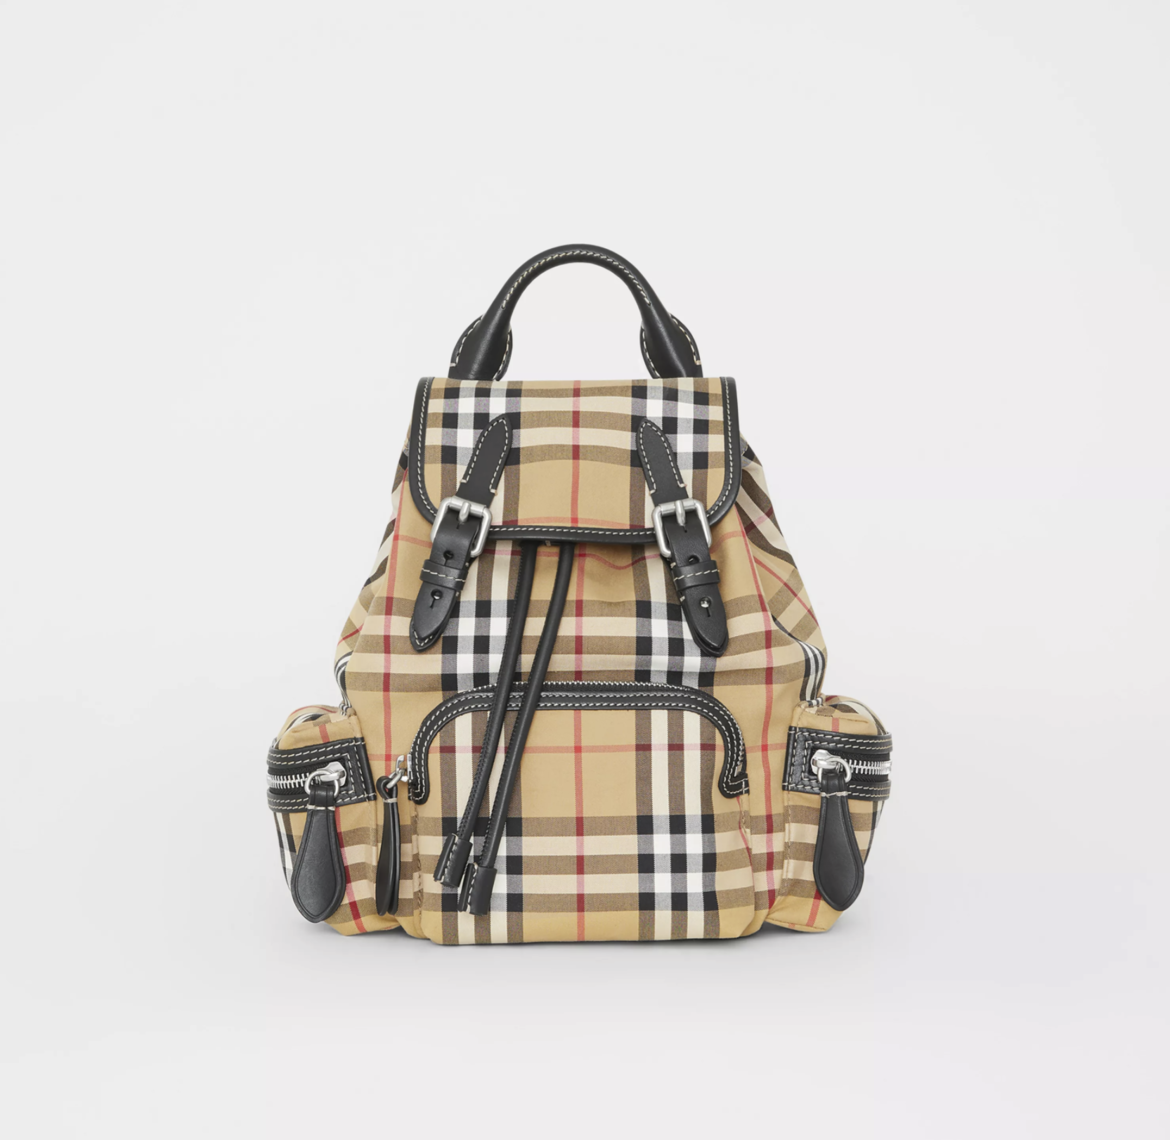 The Small Rucksack in Vintage Check and LeatherHK$12,200